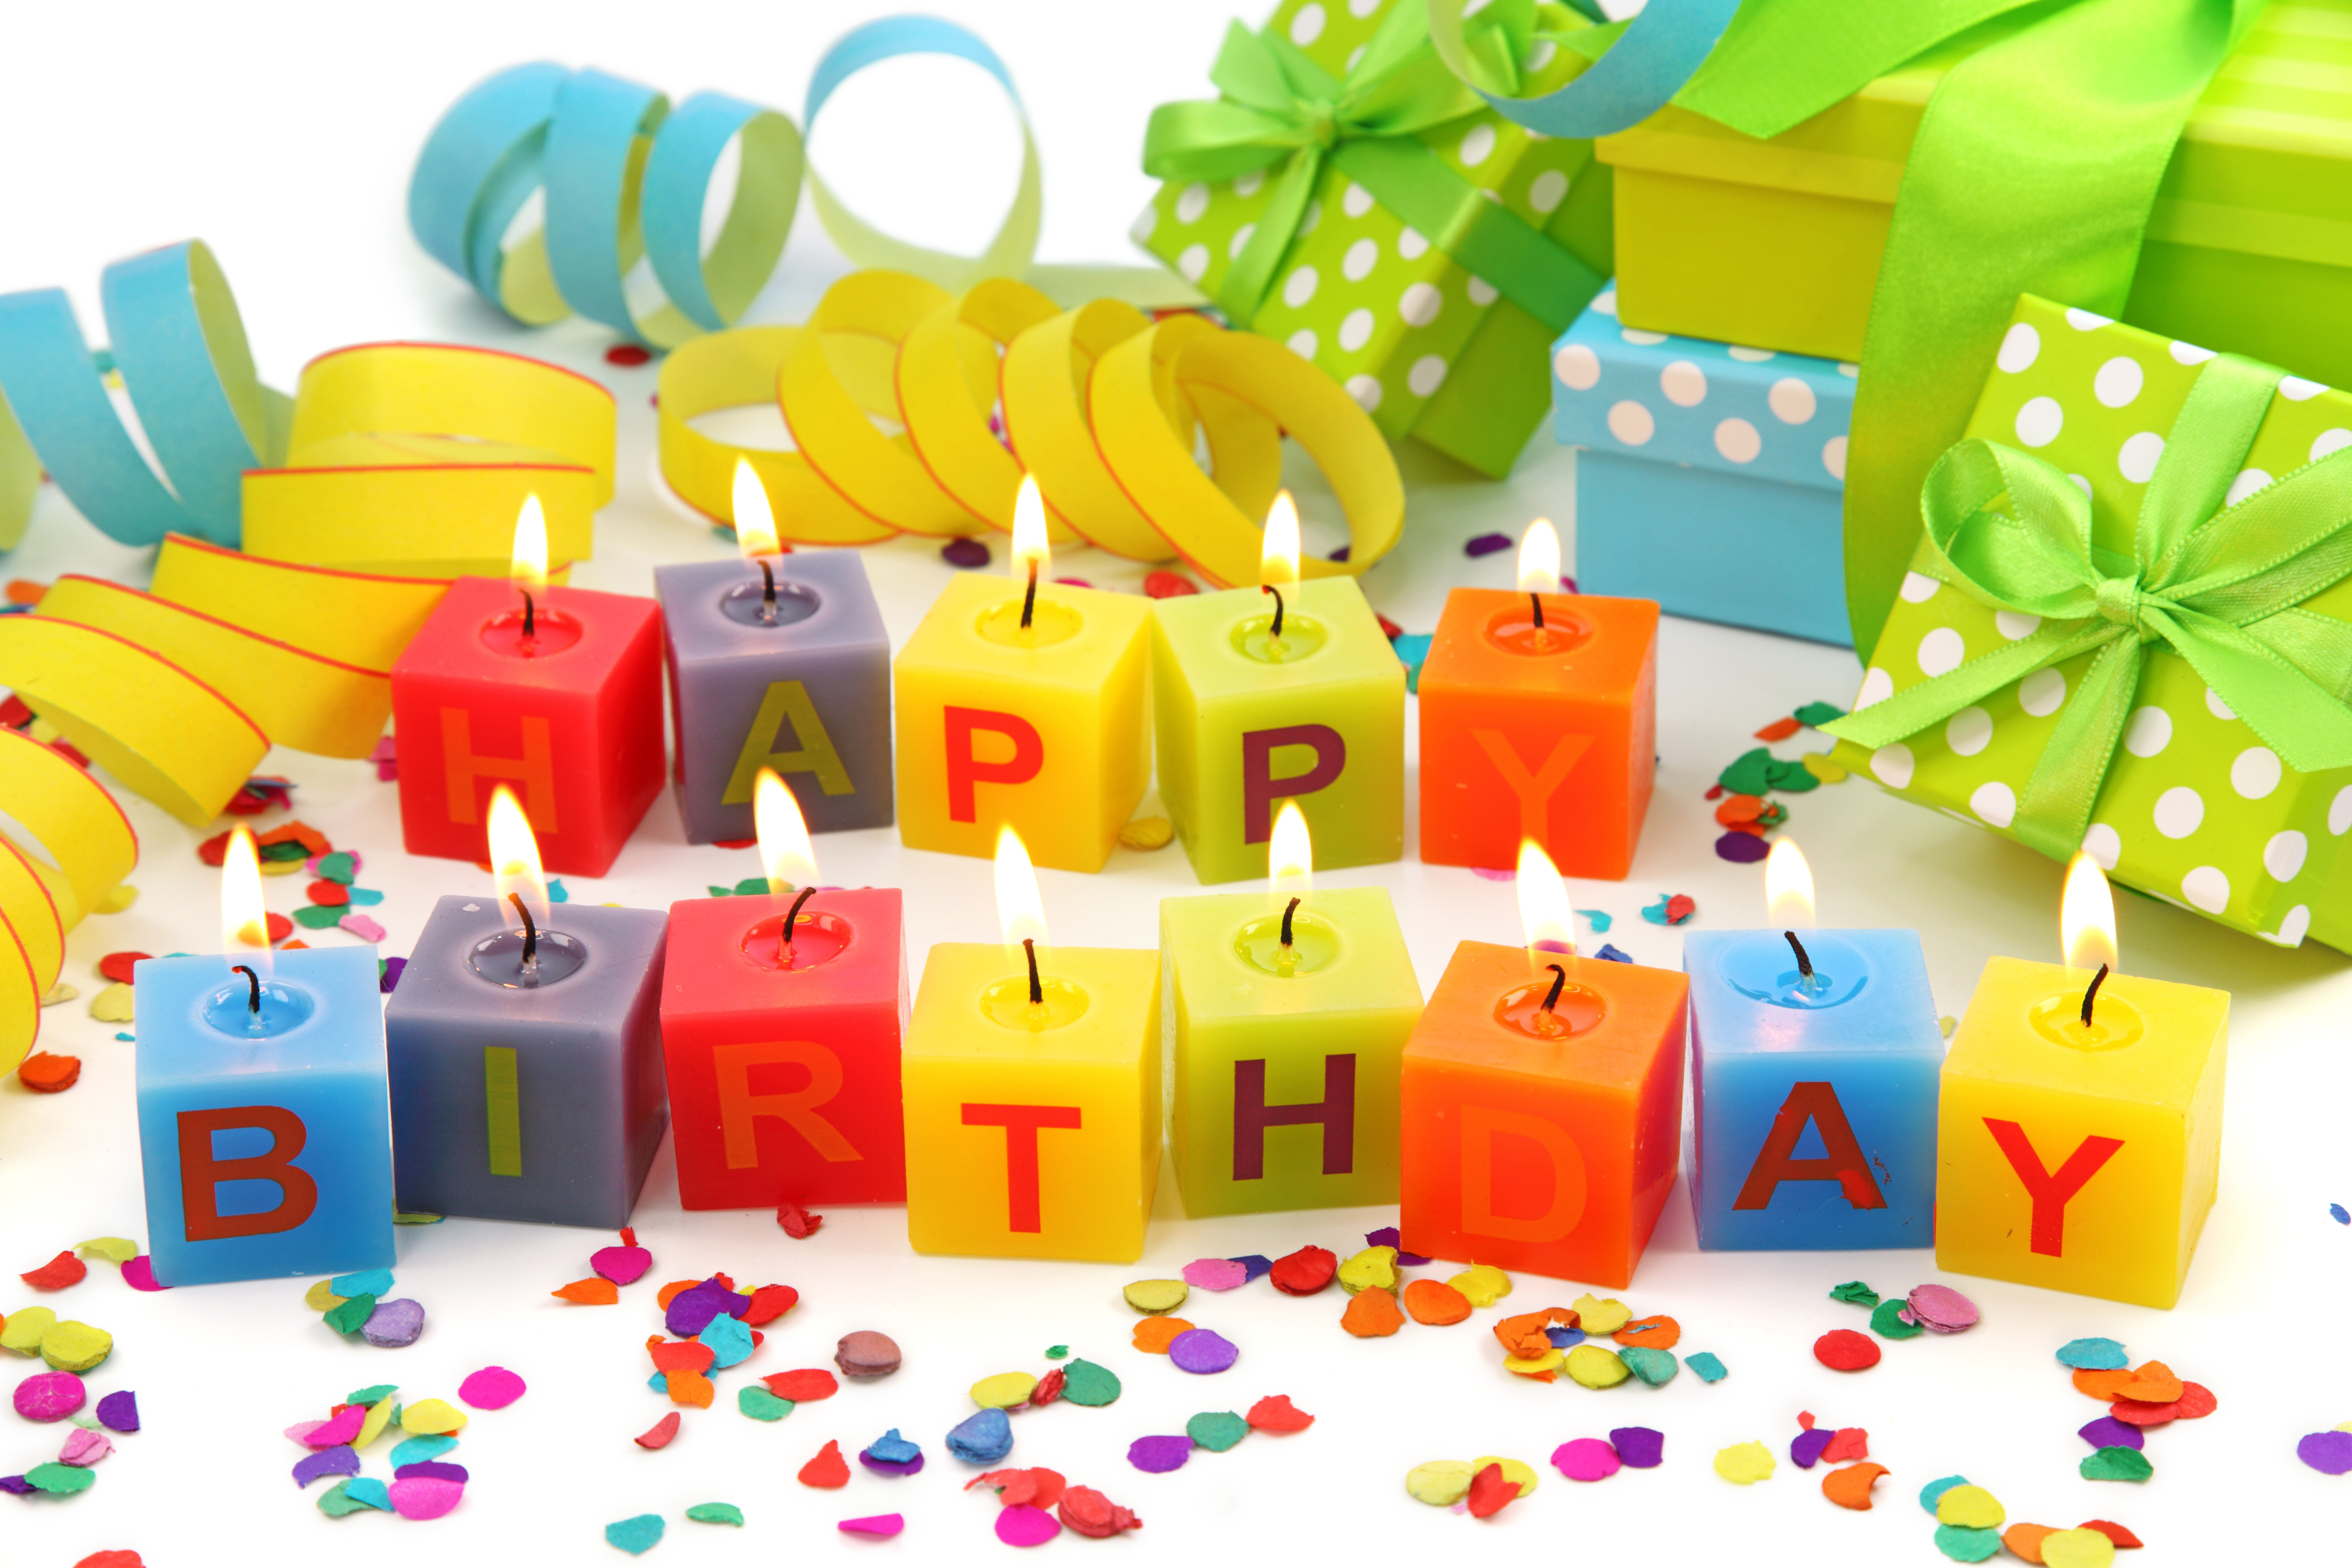 cool birthday wallpapers ; Happy-birthday-wallpaper-images-HD-cool-images-free-4k-tablet-smart-phones-desktop-wallpapers-samsung-phone-wallpapers-digital-photos-5616x3744